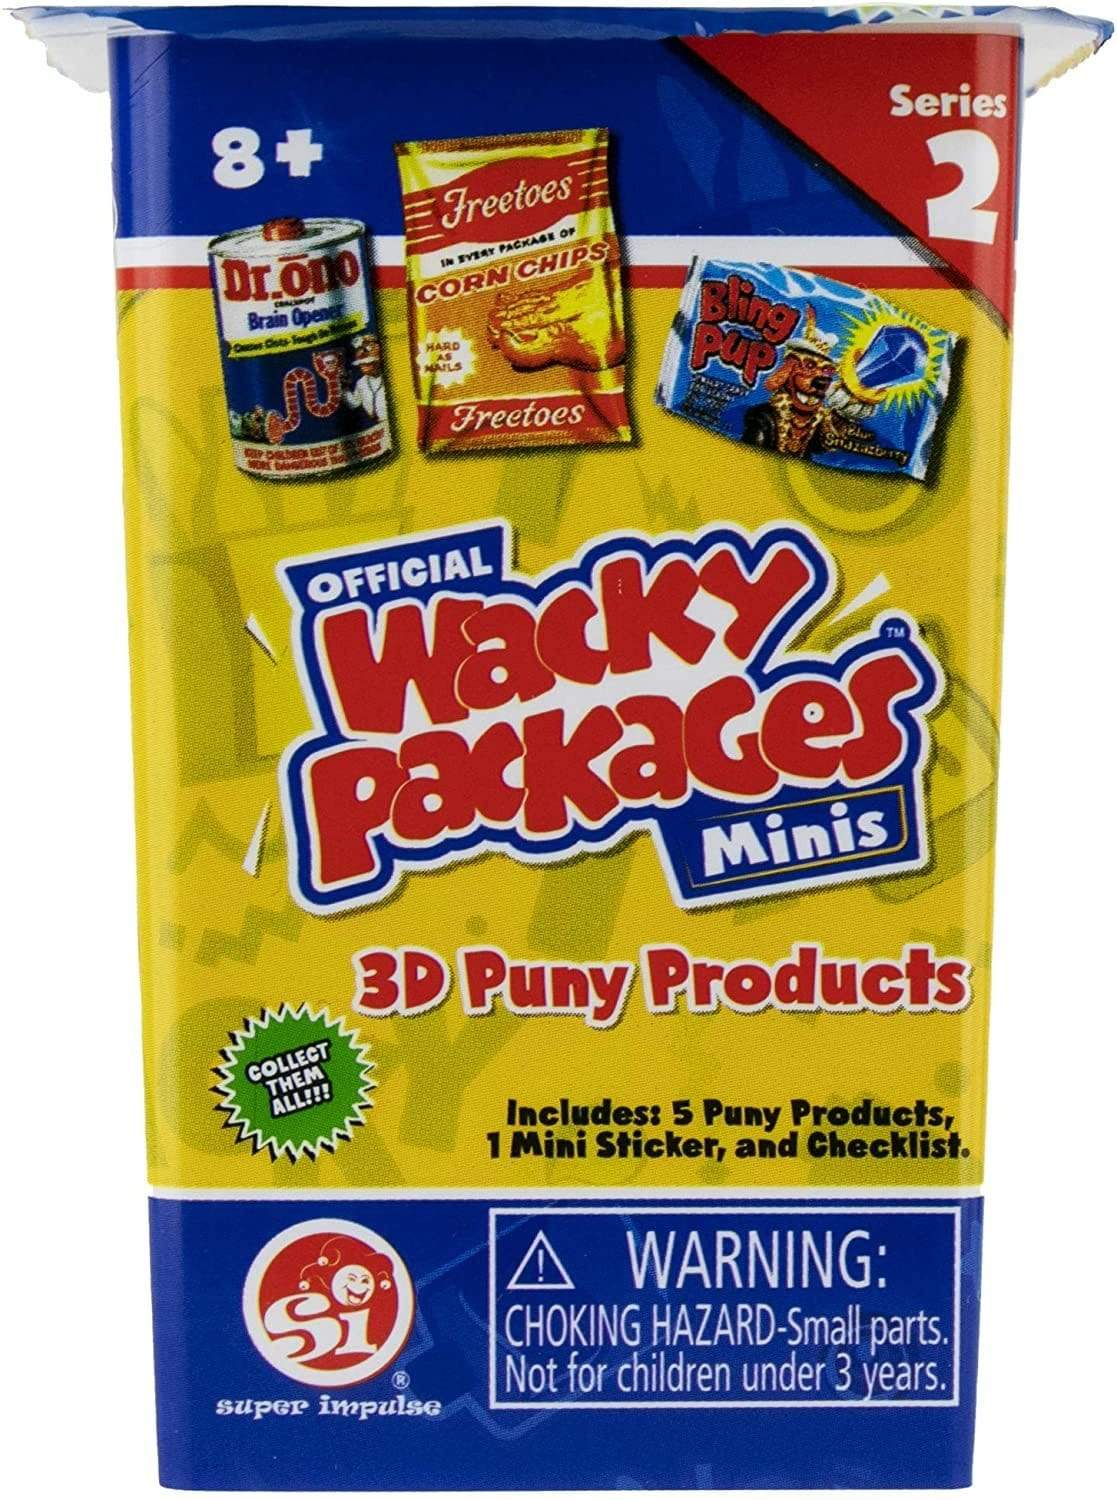 Wacky Packages: Blind Cup Minis Series 2 Super Impulse Puzzles/Playthings